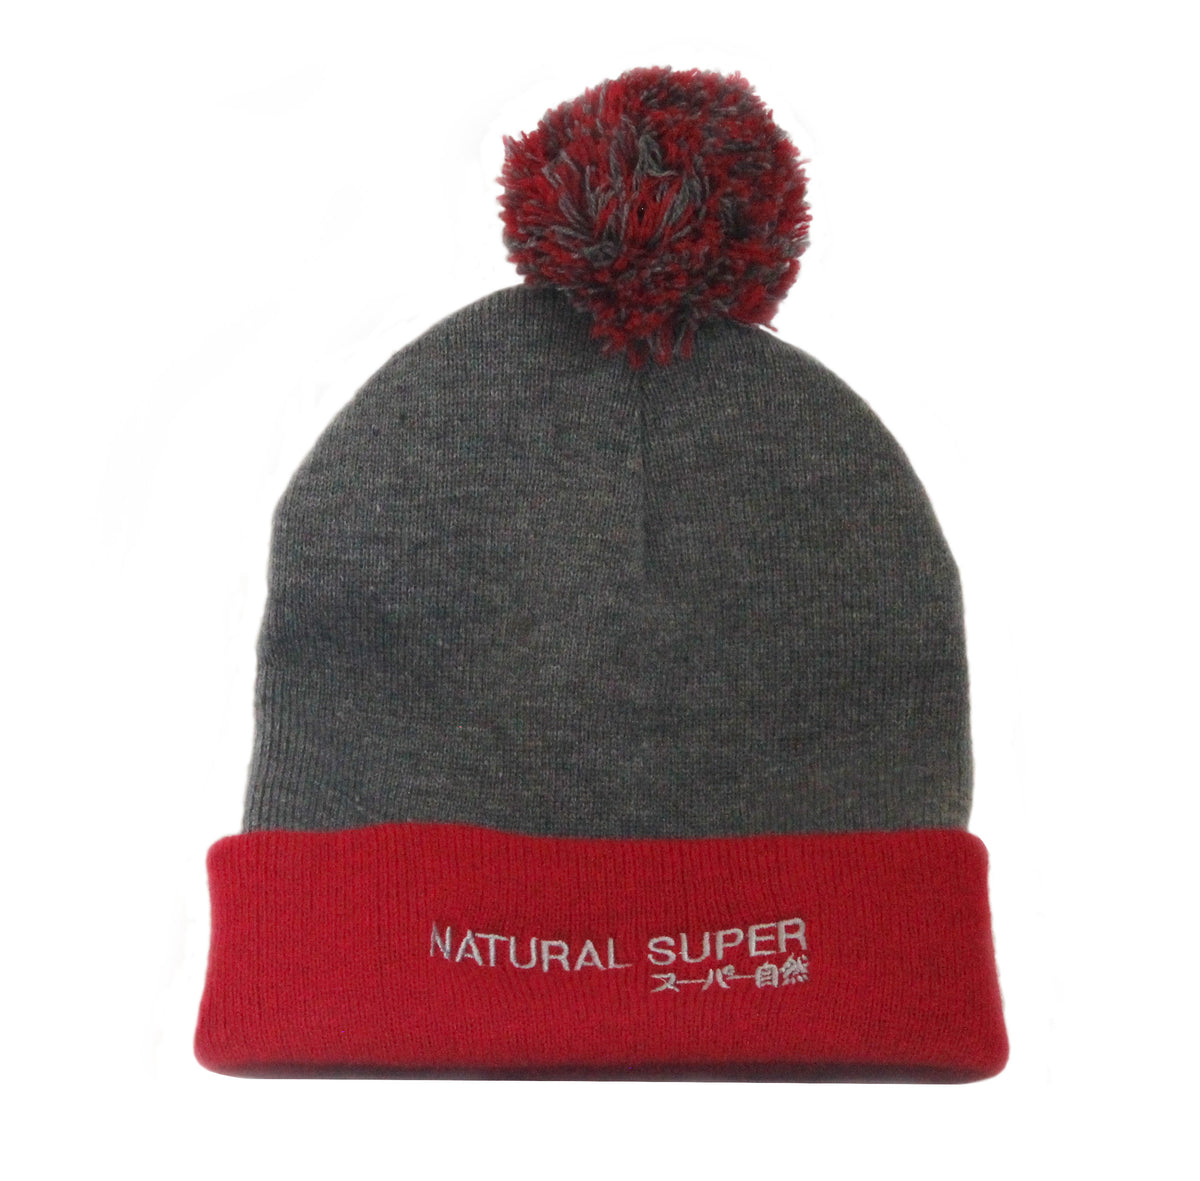 Red & Grey Knit Cap